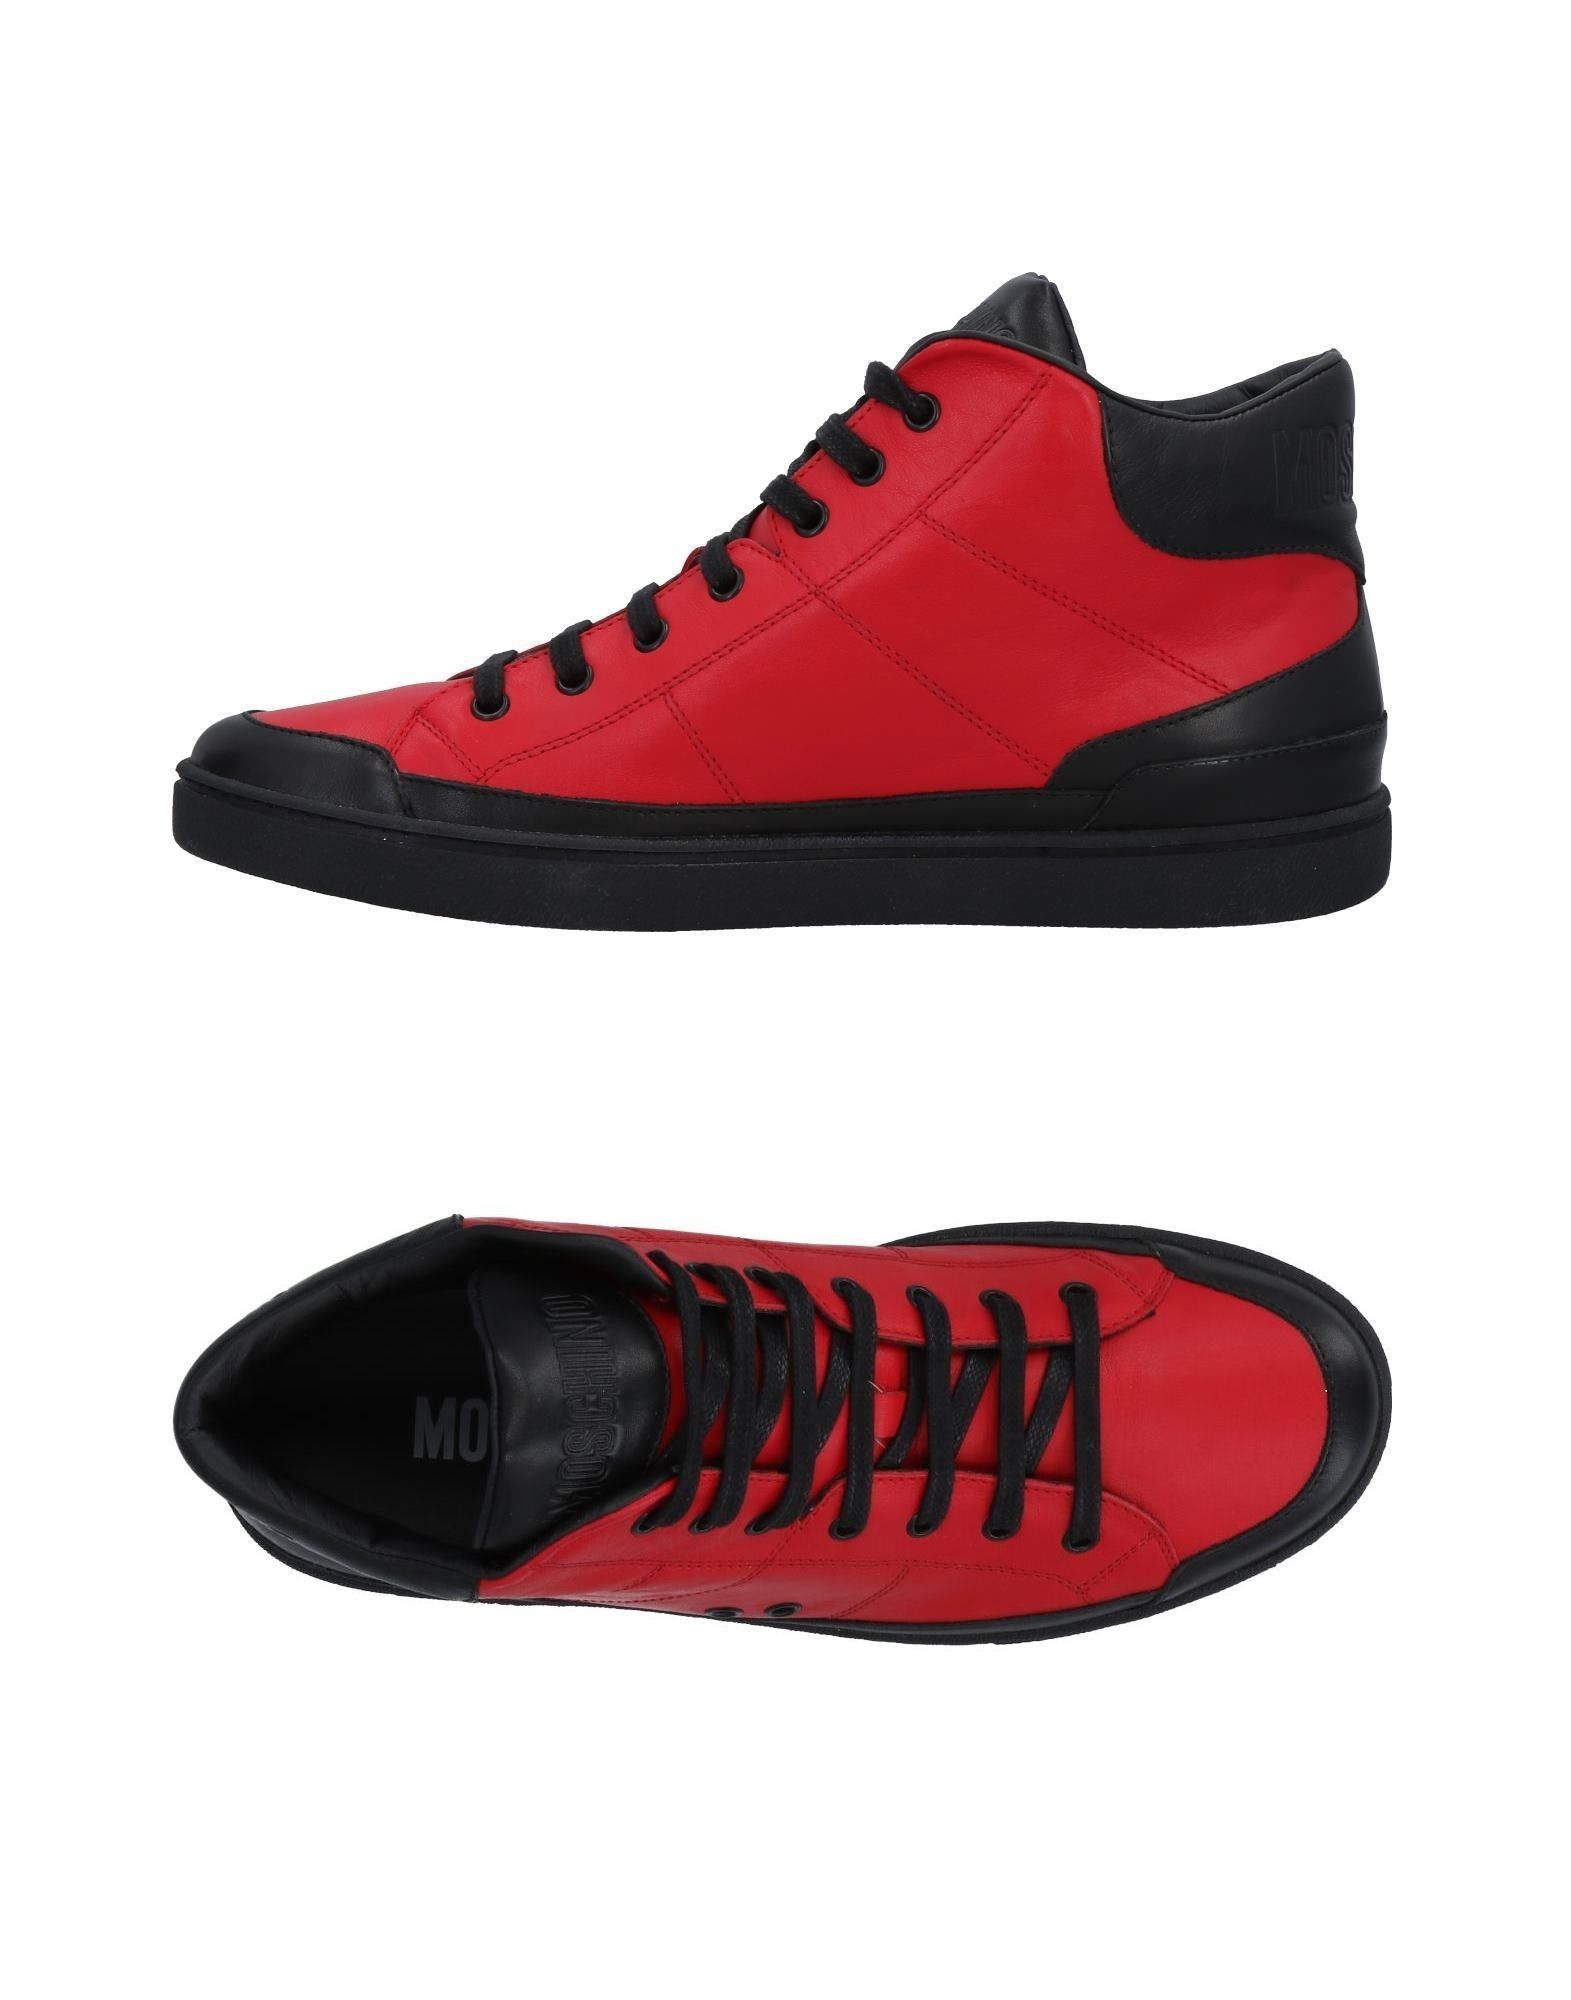 Sneakers Moschino Homme - Les Sneakers Moschino  Rouge Les - chaussures les plus populaires pour les hommes et les femmes f15bff